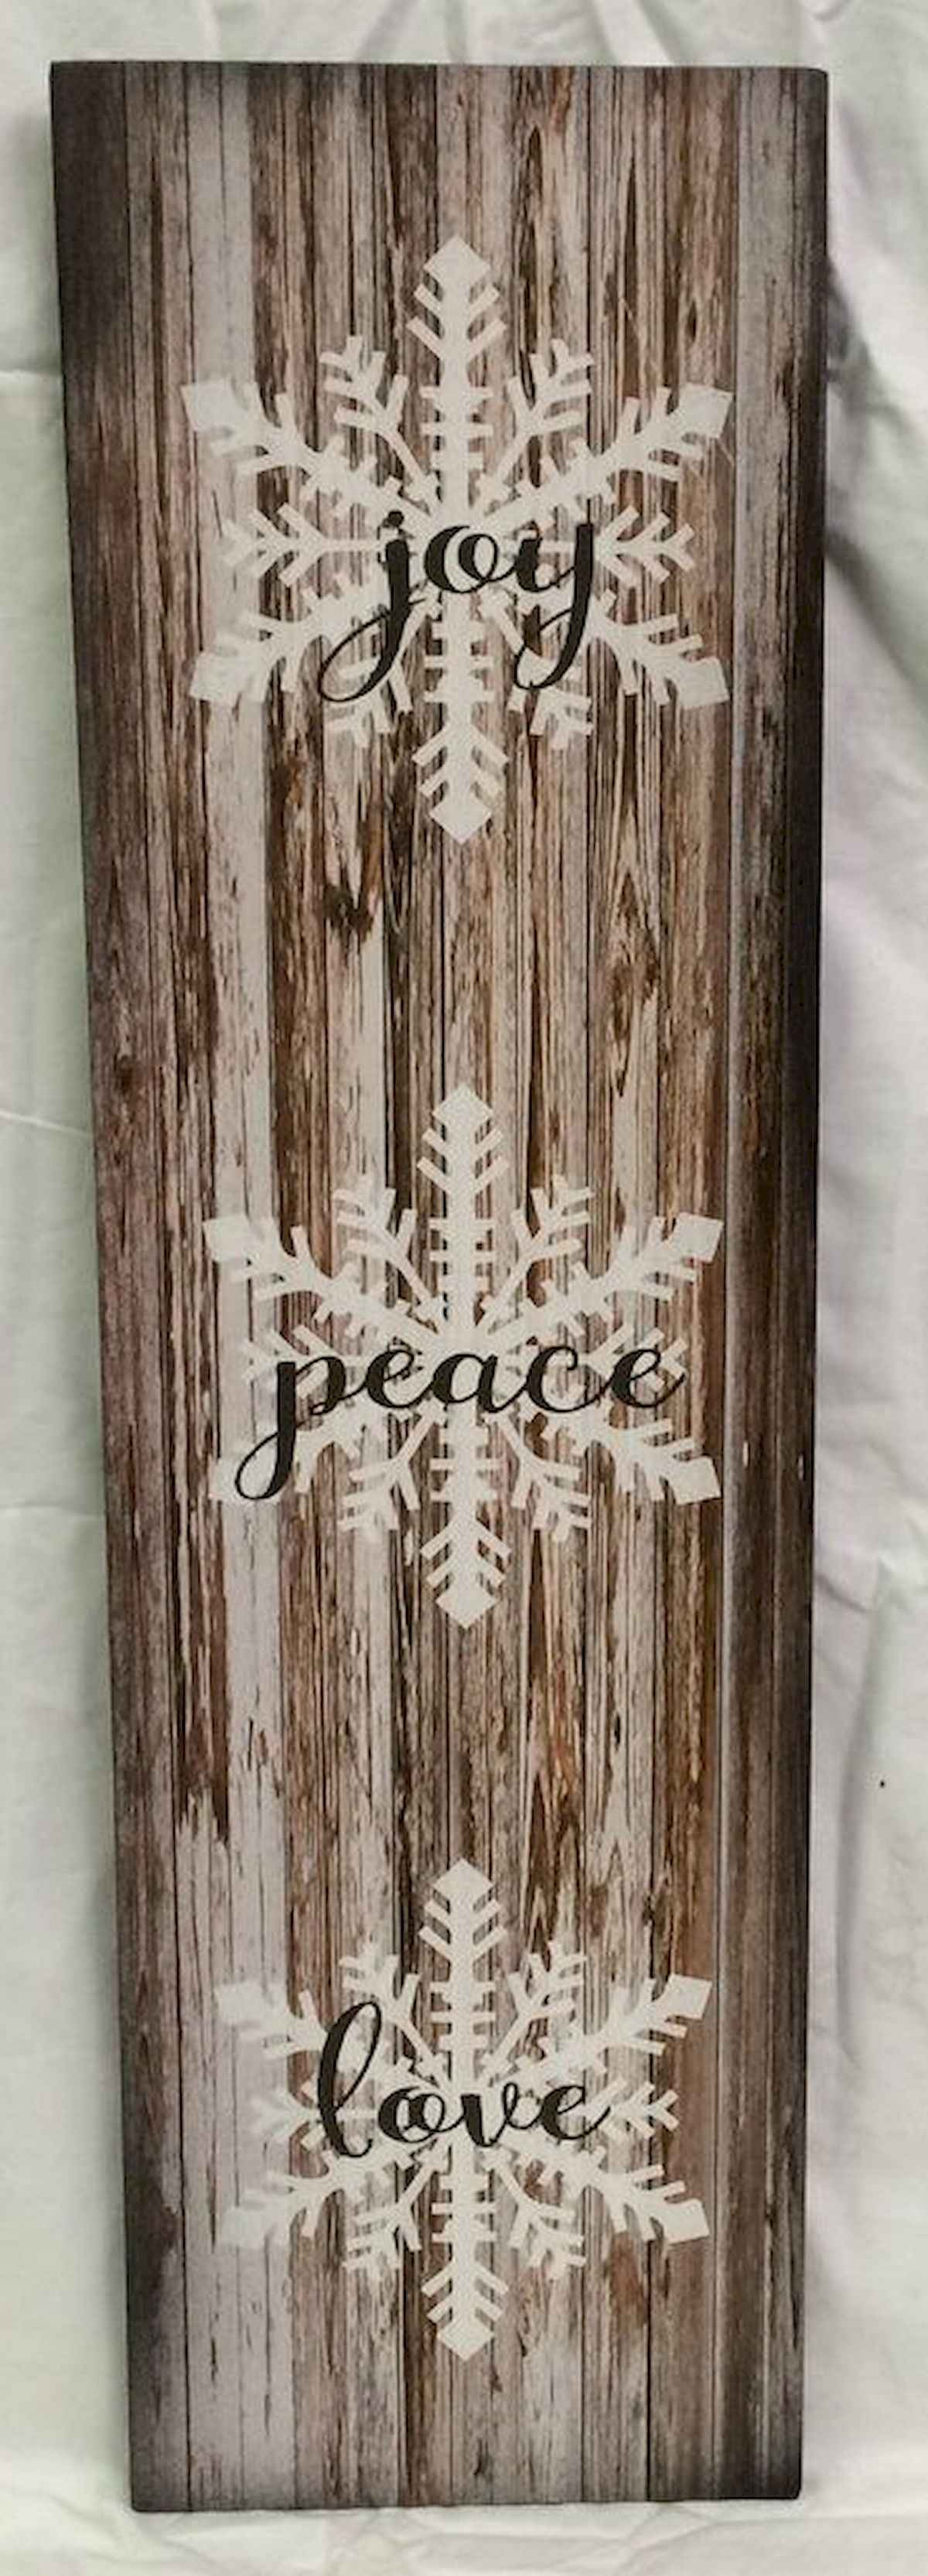 60 awesome wall art christmas ideas decorations (31)